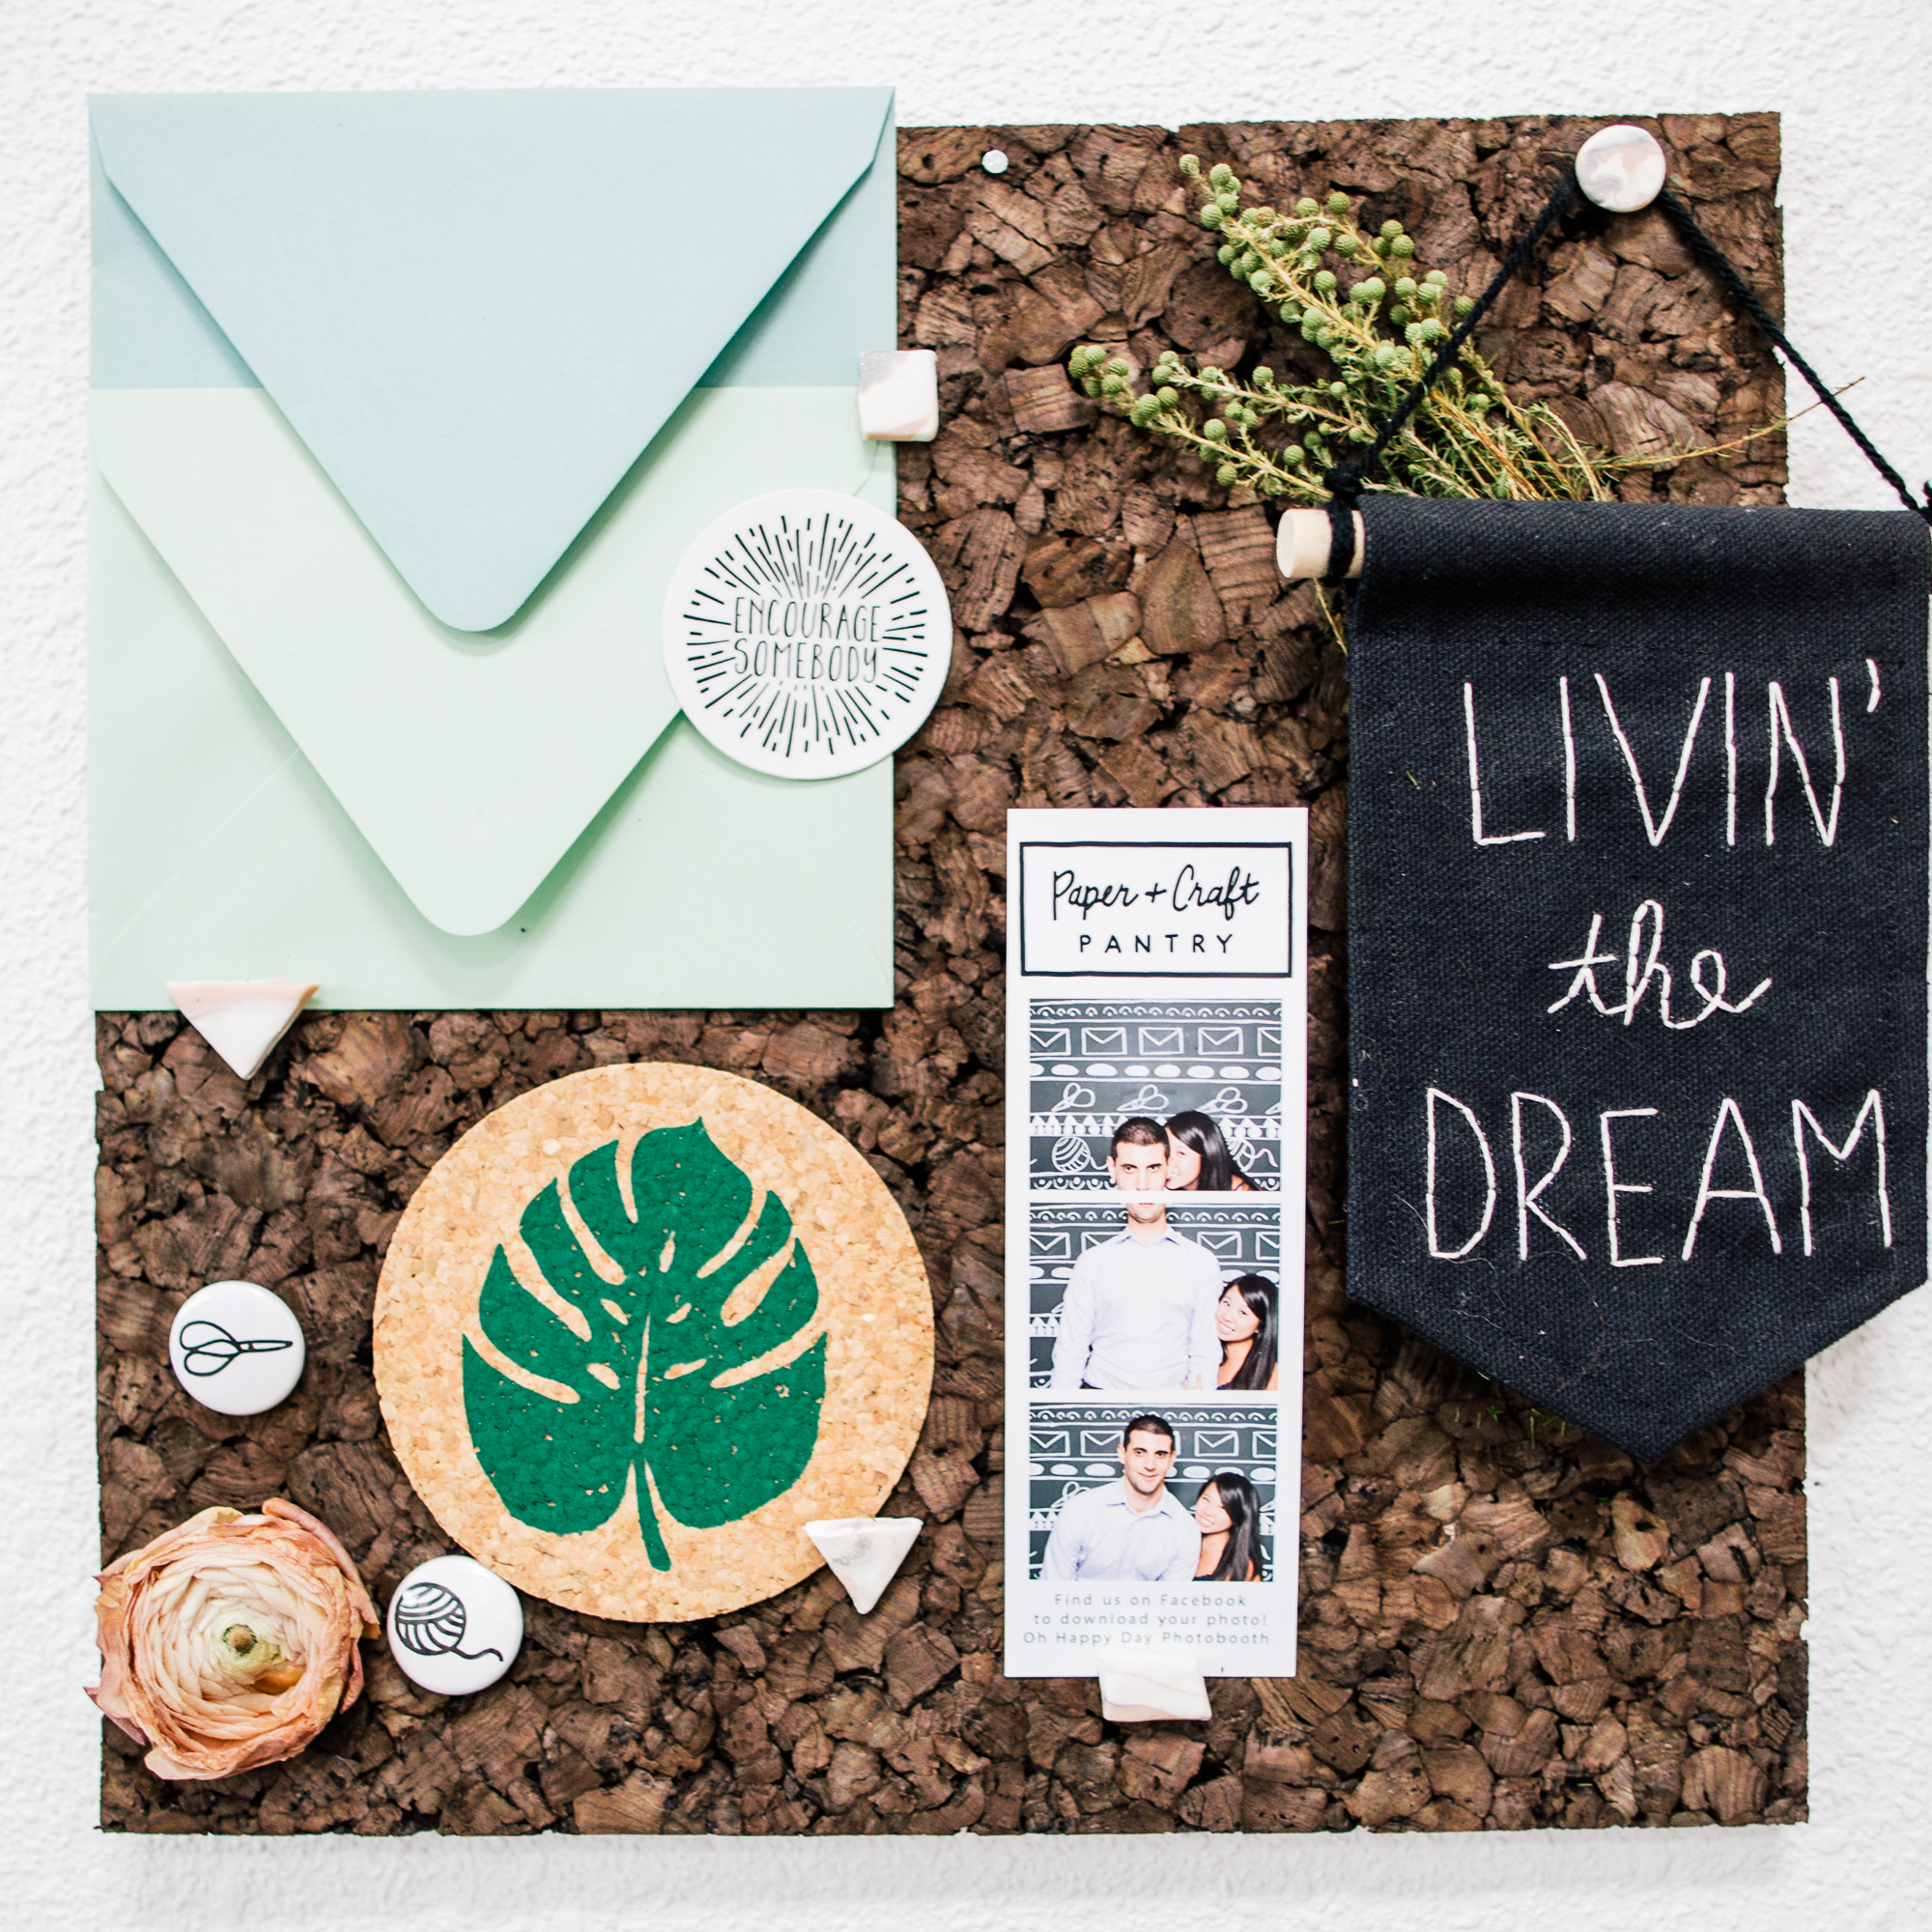 Pei,  The Paper + Craft Pantry